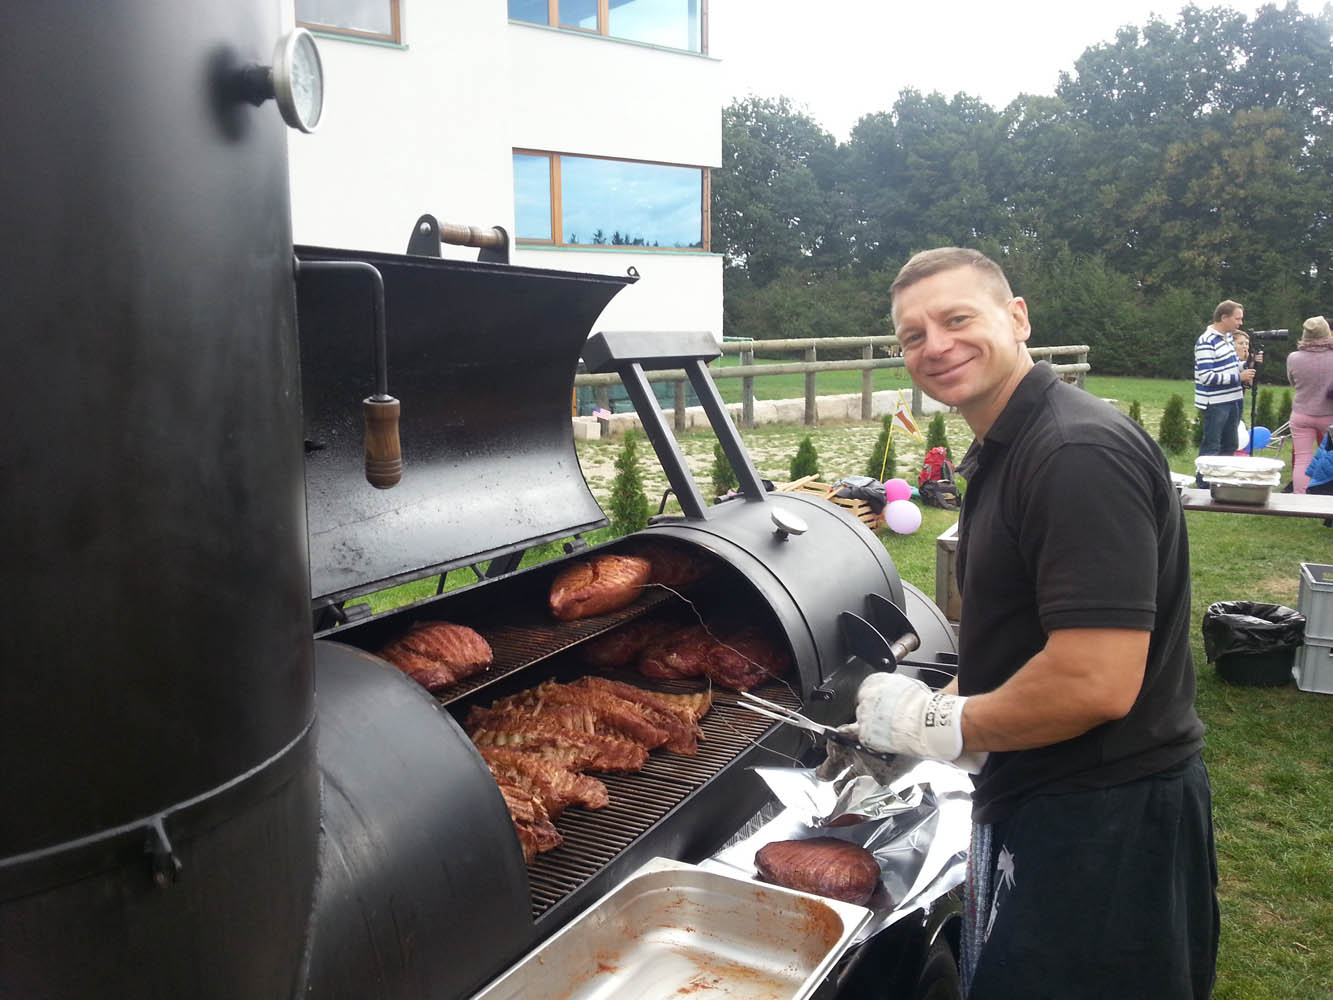 grillen mit smoker in n rnberg das besondere catering event. Black Bedroom Furniture Sets. Home Design Ideas